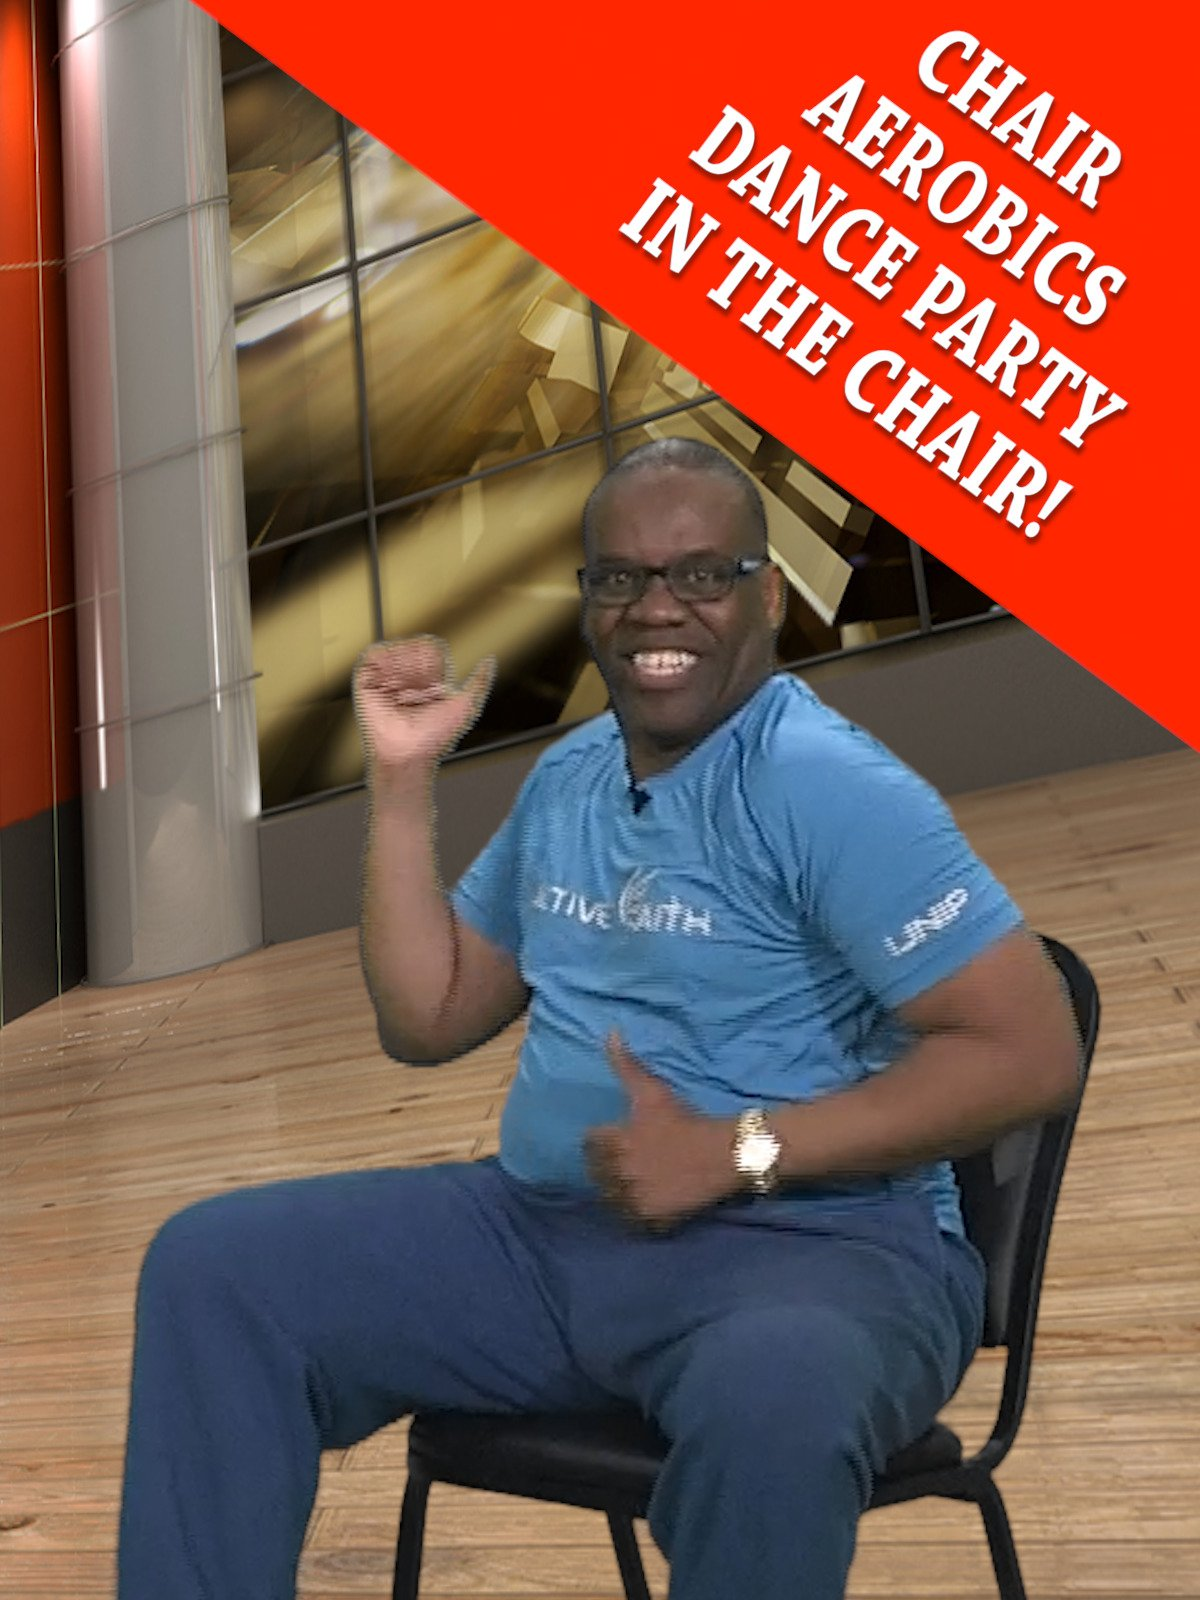 Chair Aerobics Dance Party In The Chair on Amazon Prime Video UK